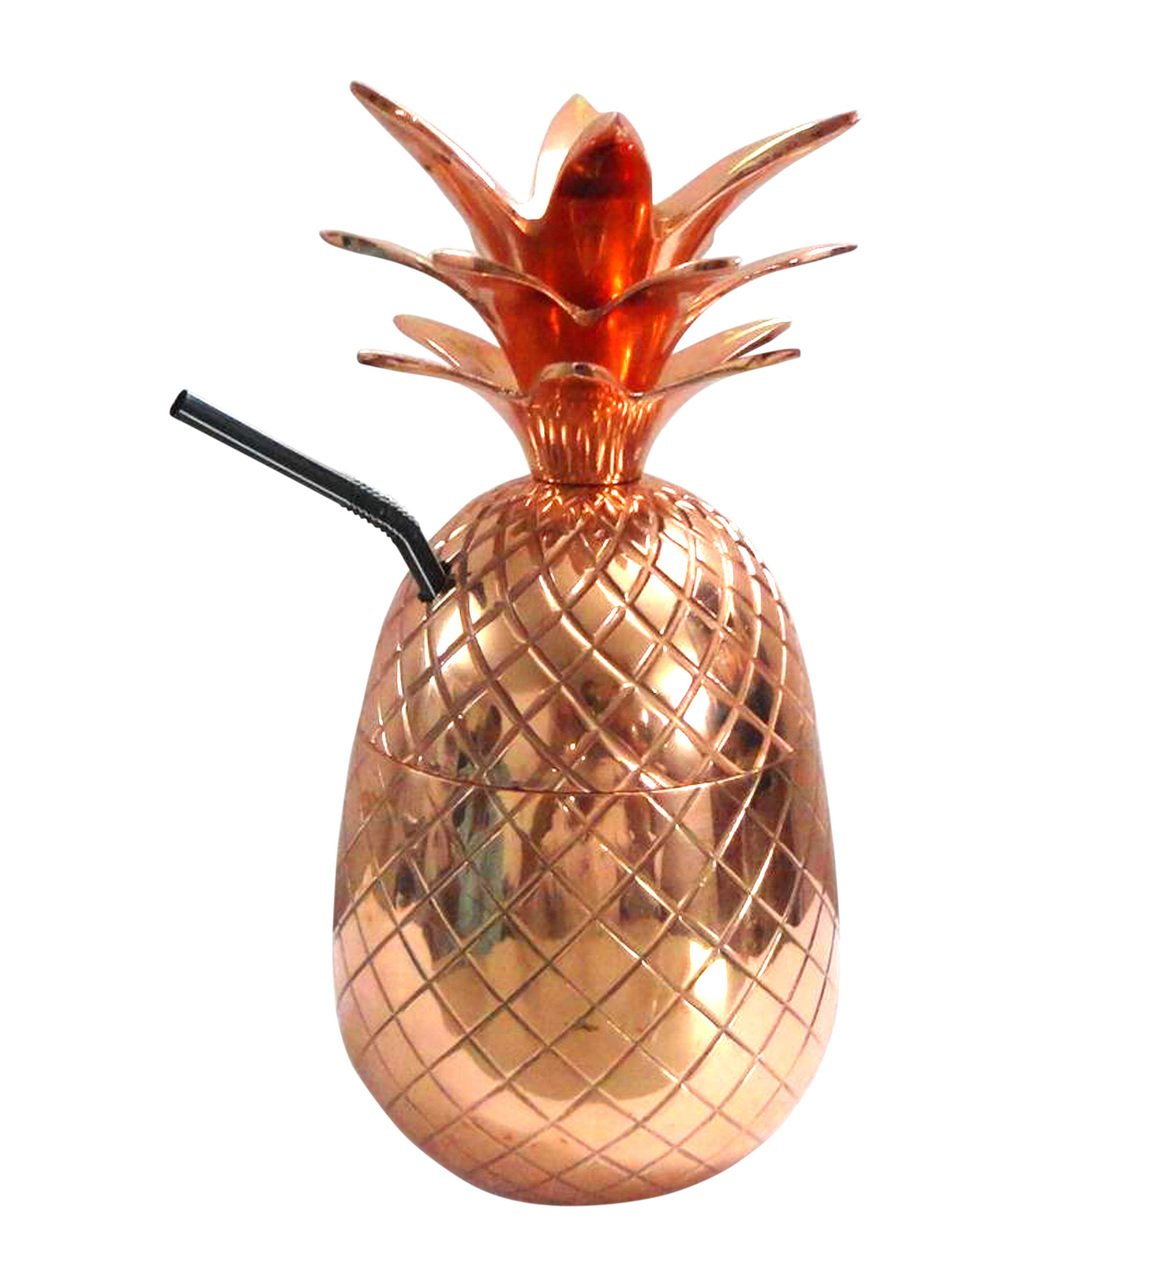 amazon com premium quality copper pineapple mug 24 oz cup tumblers